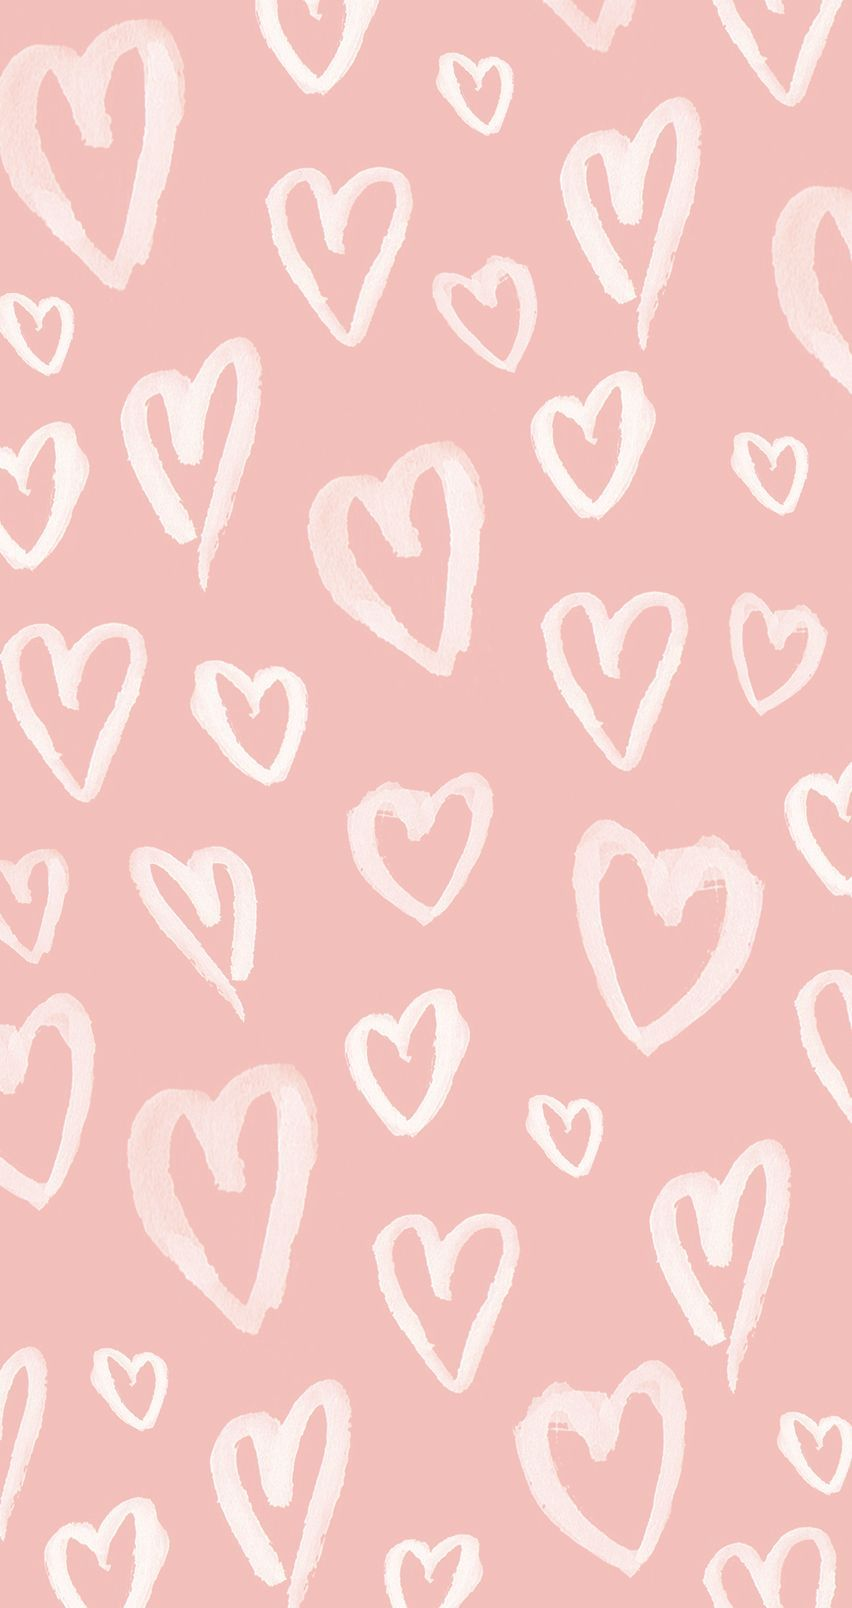 852x1608 Pastel Pink Hearts iPhone Wallpaper @PanPins | iPhone ...